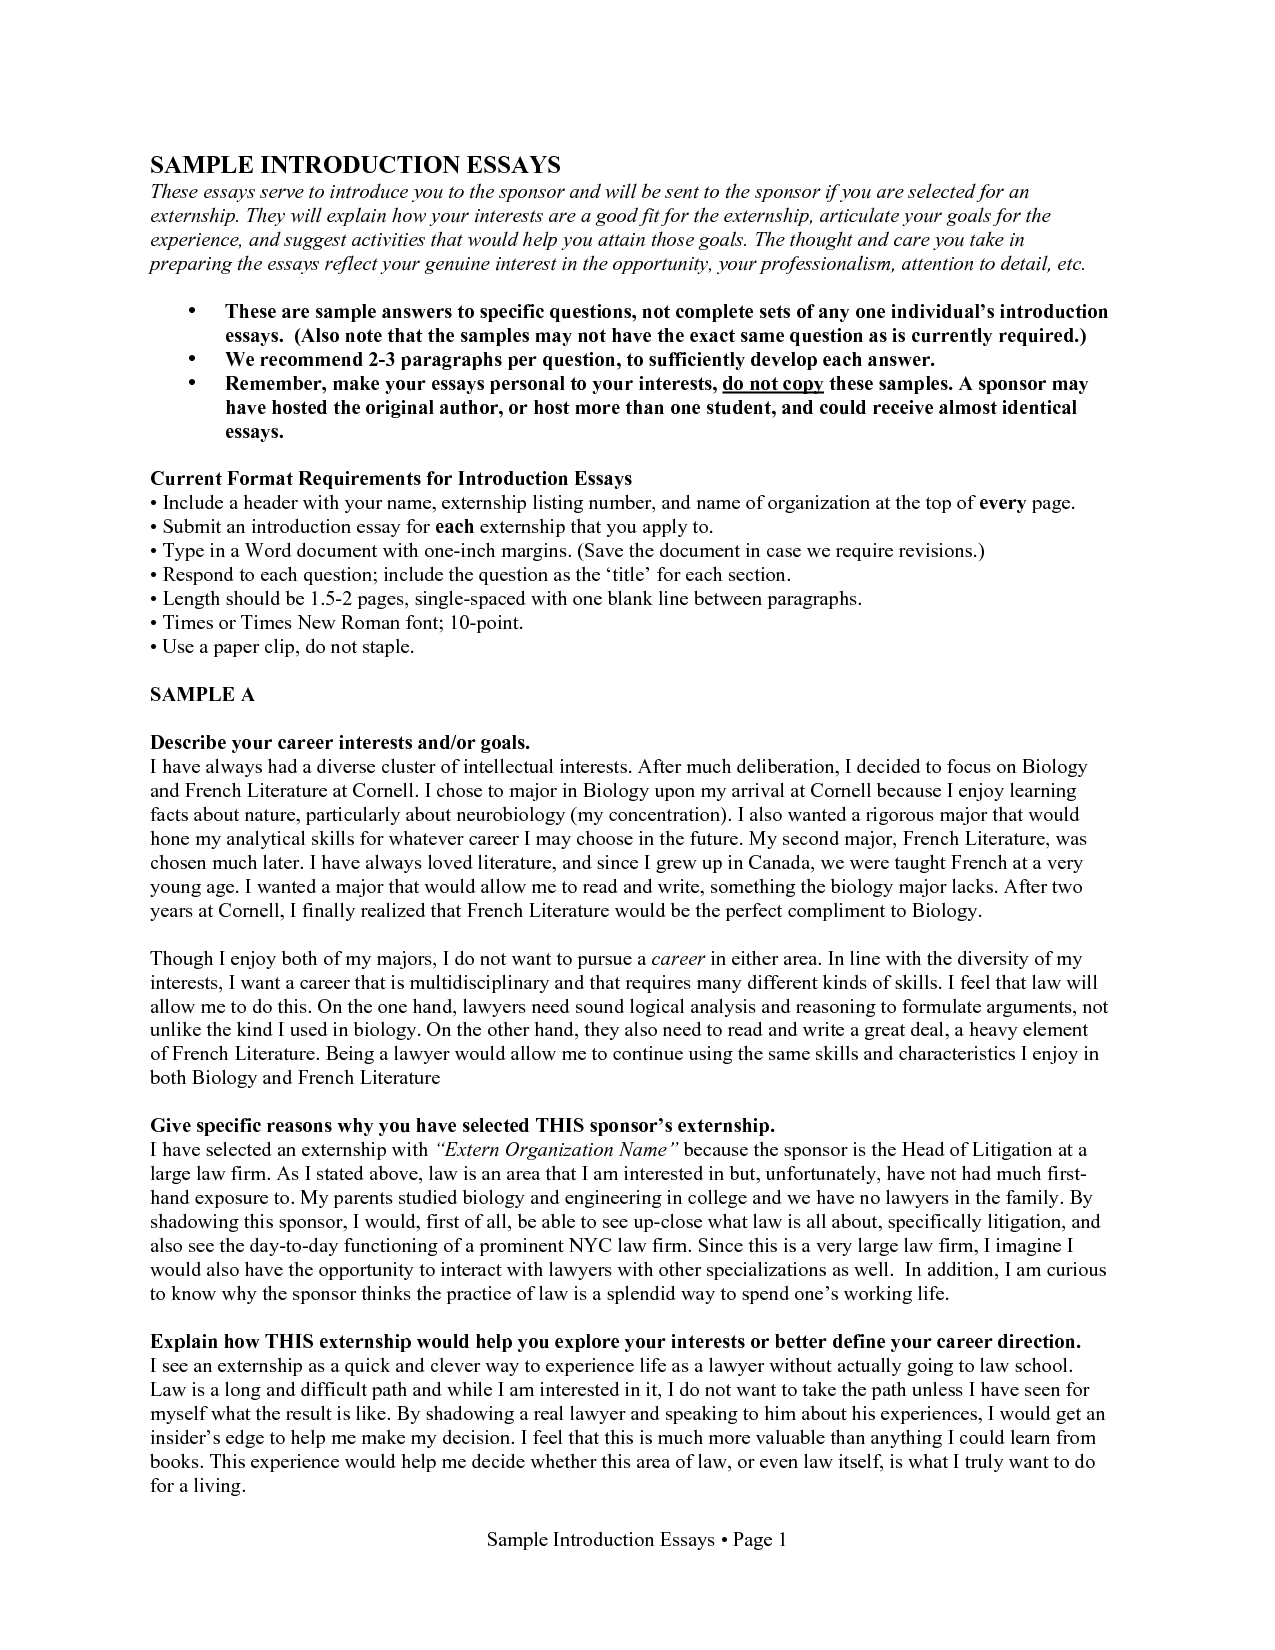 essay on service about self From us you can buy many essays on various topics at affordable prices qualityessaypapercom as about us, is an online-based academic assistance service of its kind notable thing about our services is that we have a supportive staff full of professional writers who have magnificent research skills, amazing writing skills, and loads of experience.